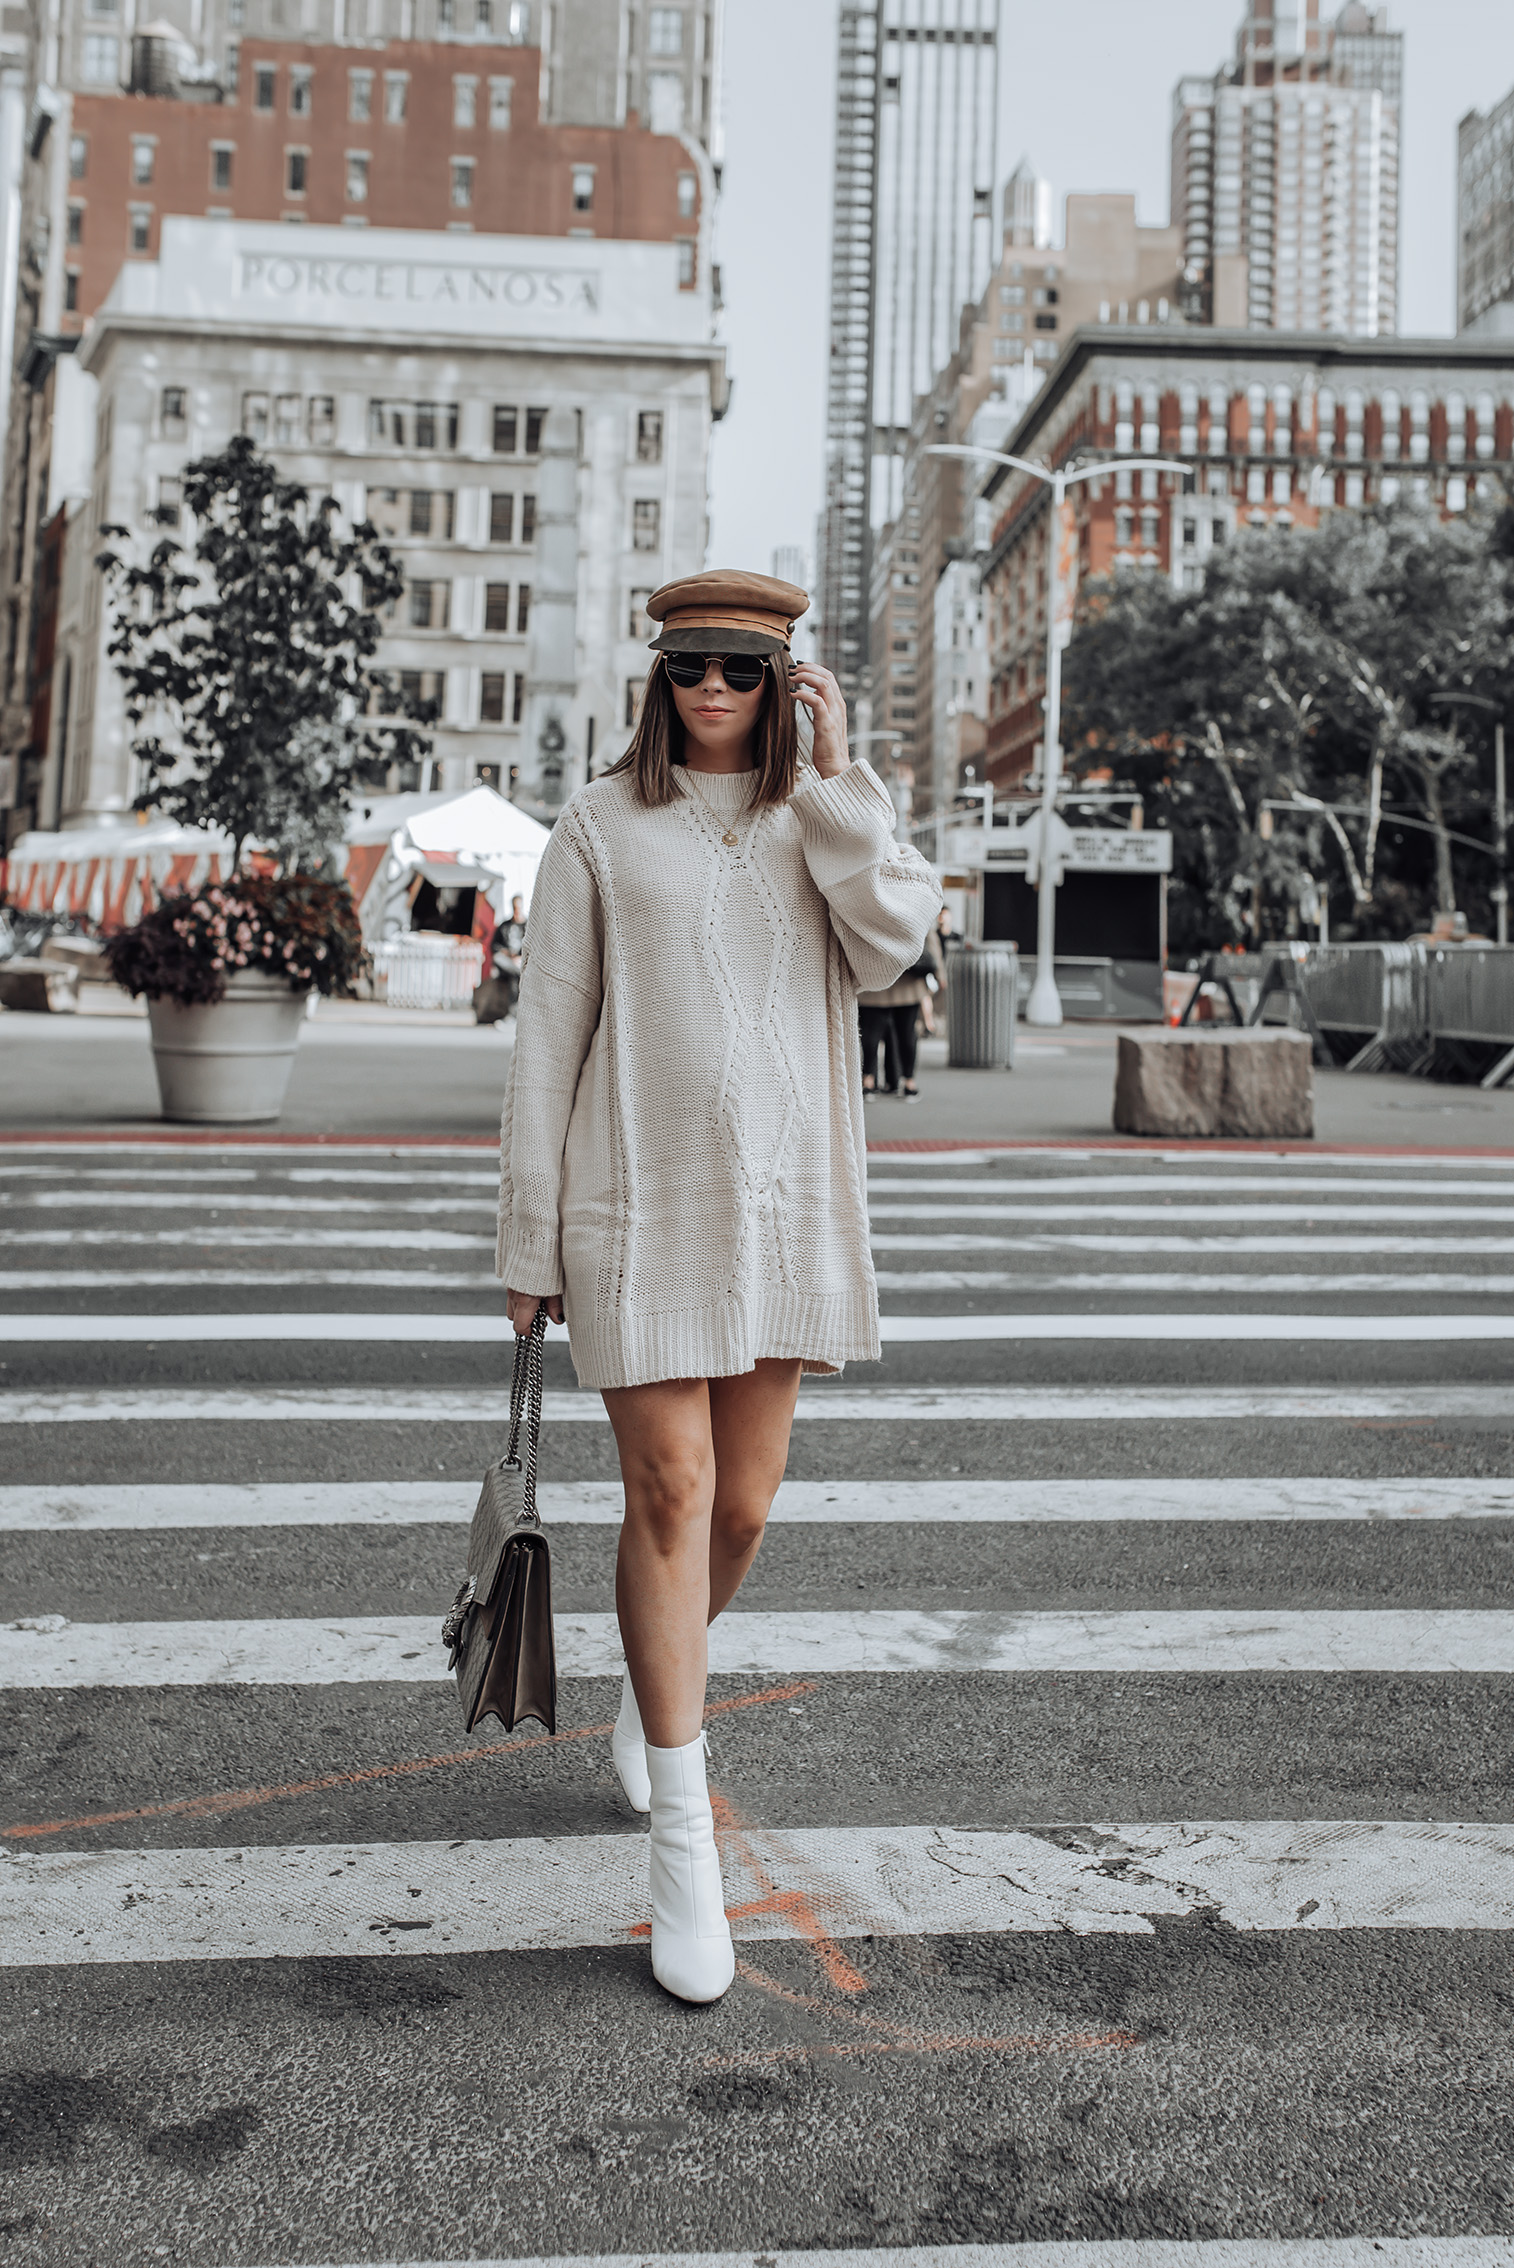 Sweater dress weather |Large Cable Knit Jumper | Lola Cap in Light Brown | White Slim Heel Boots #liketkit #streetstyle #minimalist